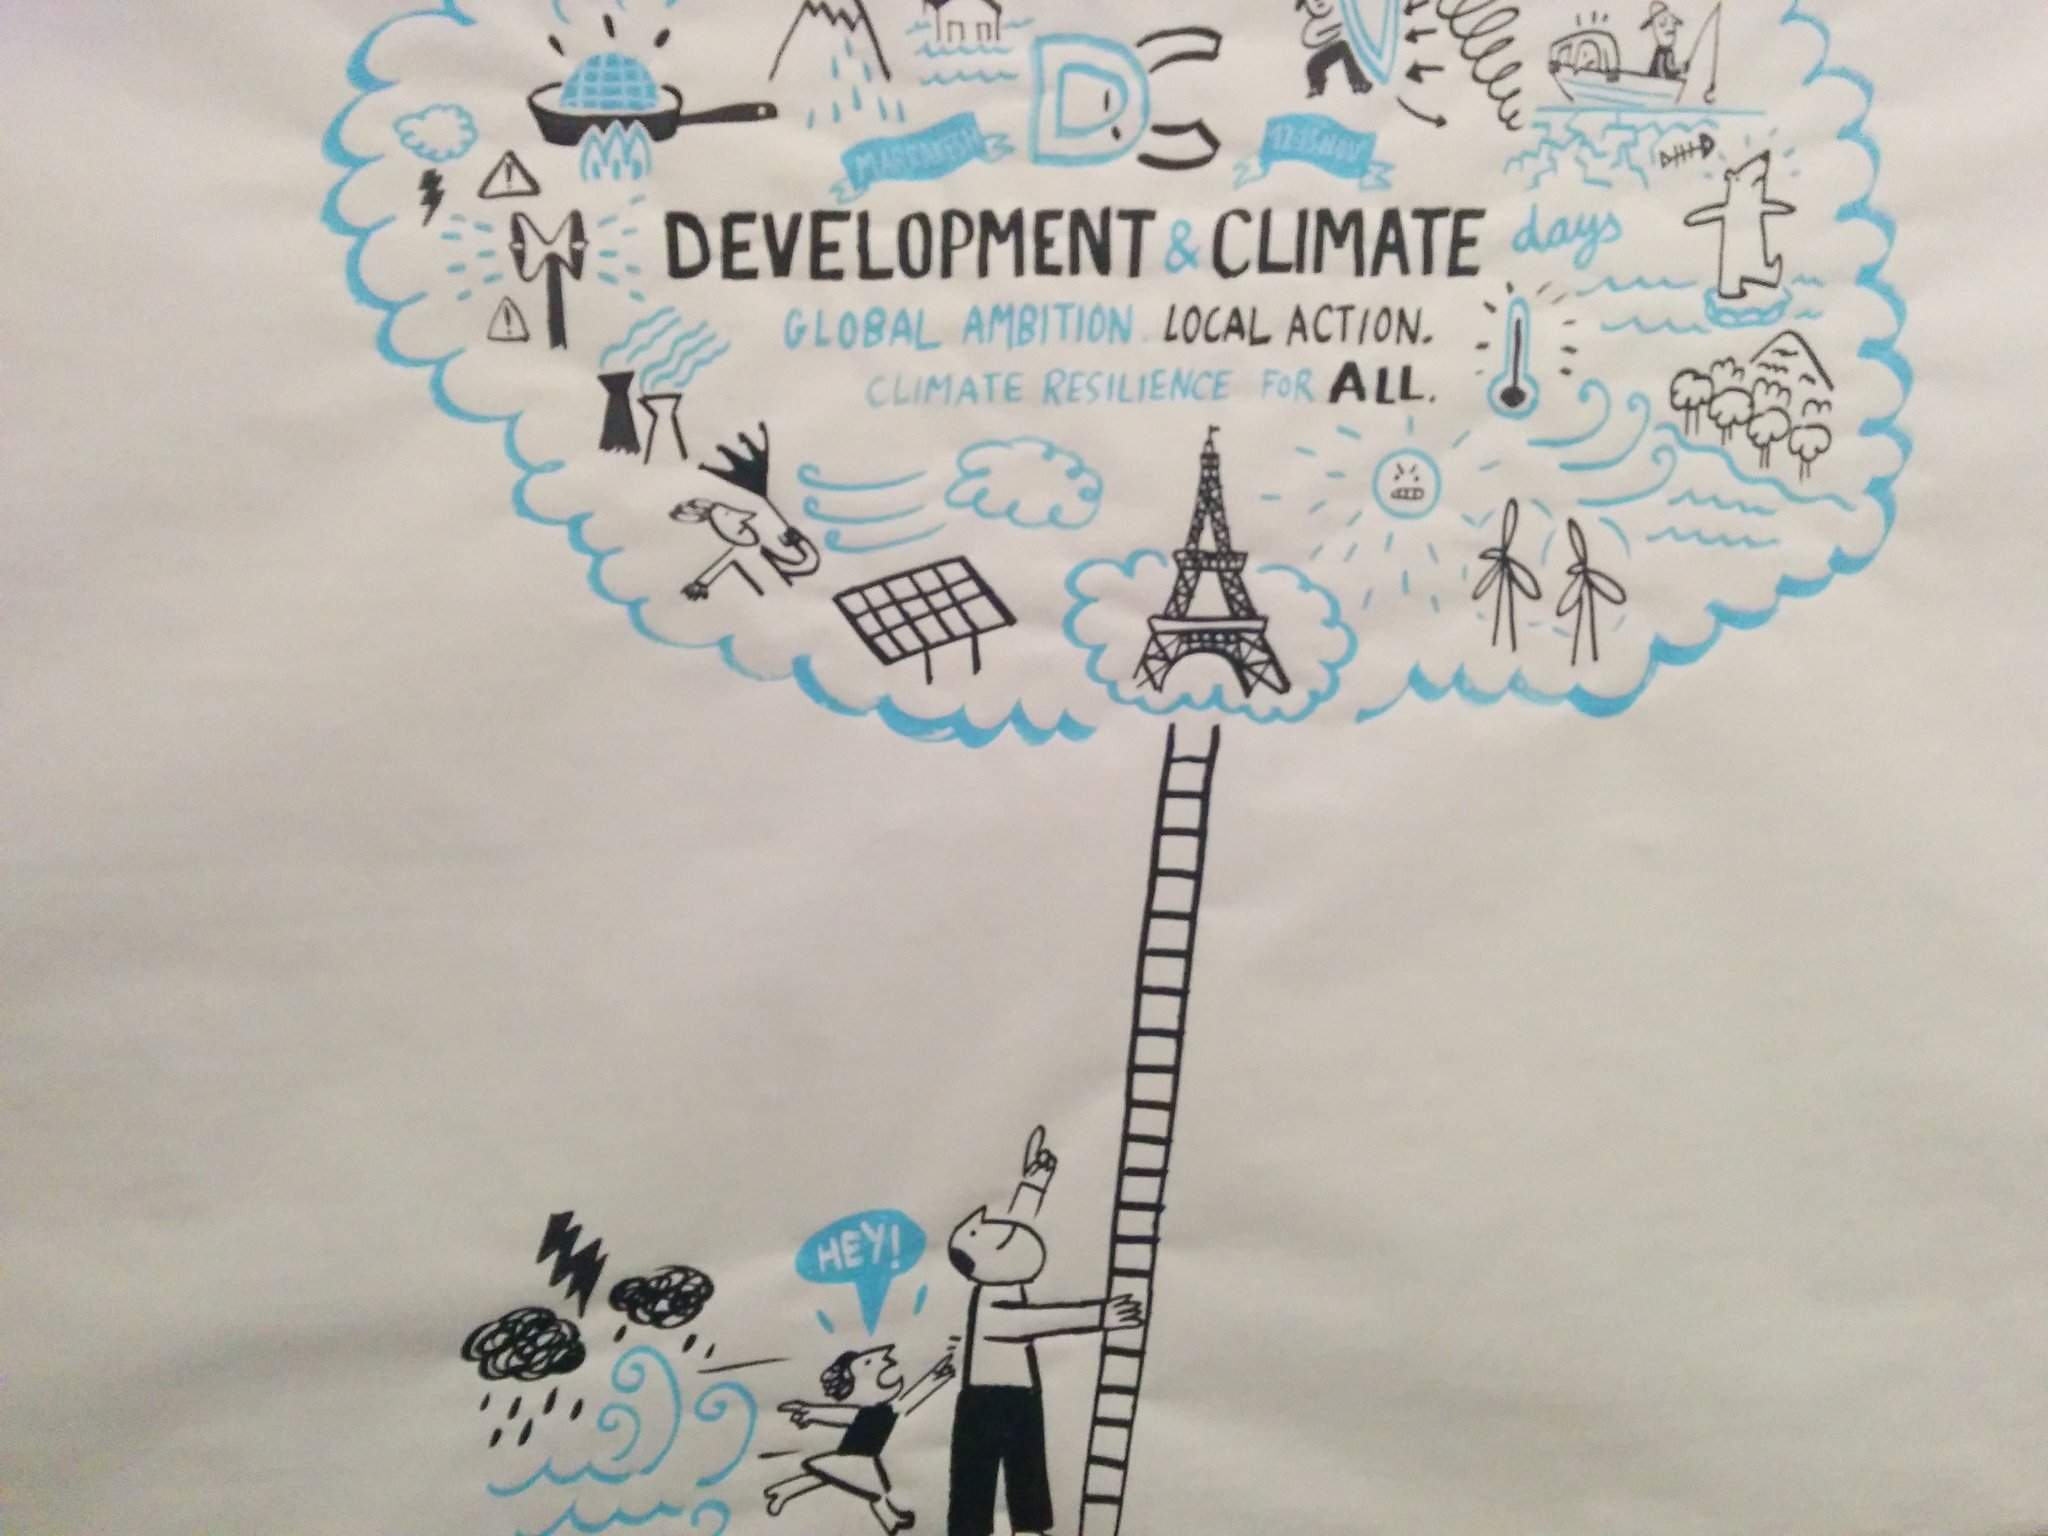 Embedding climate ambition is a key theme of this yr's #DCDays. Achieving 1.5 target must be delivered in way vulnerable can thrive #COP22 https://t.co/HPa8edMQaZ